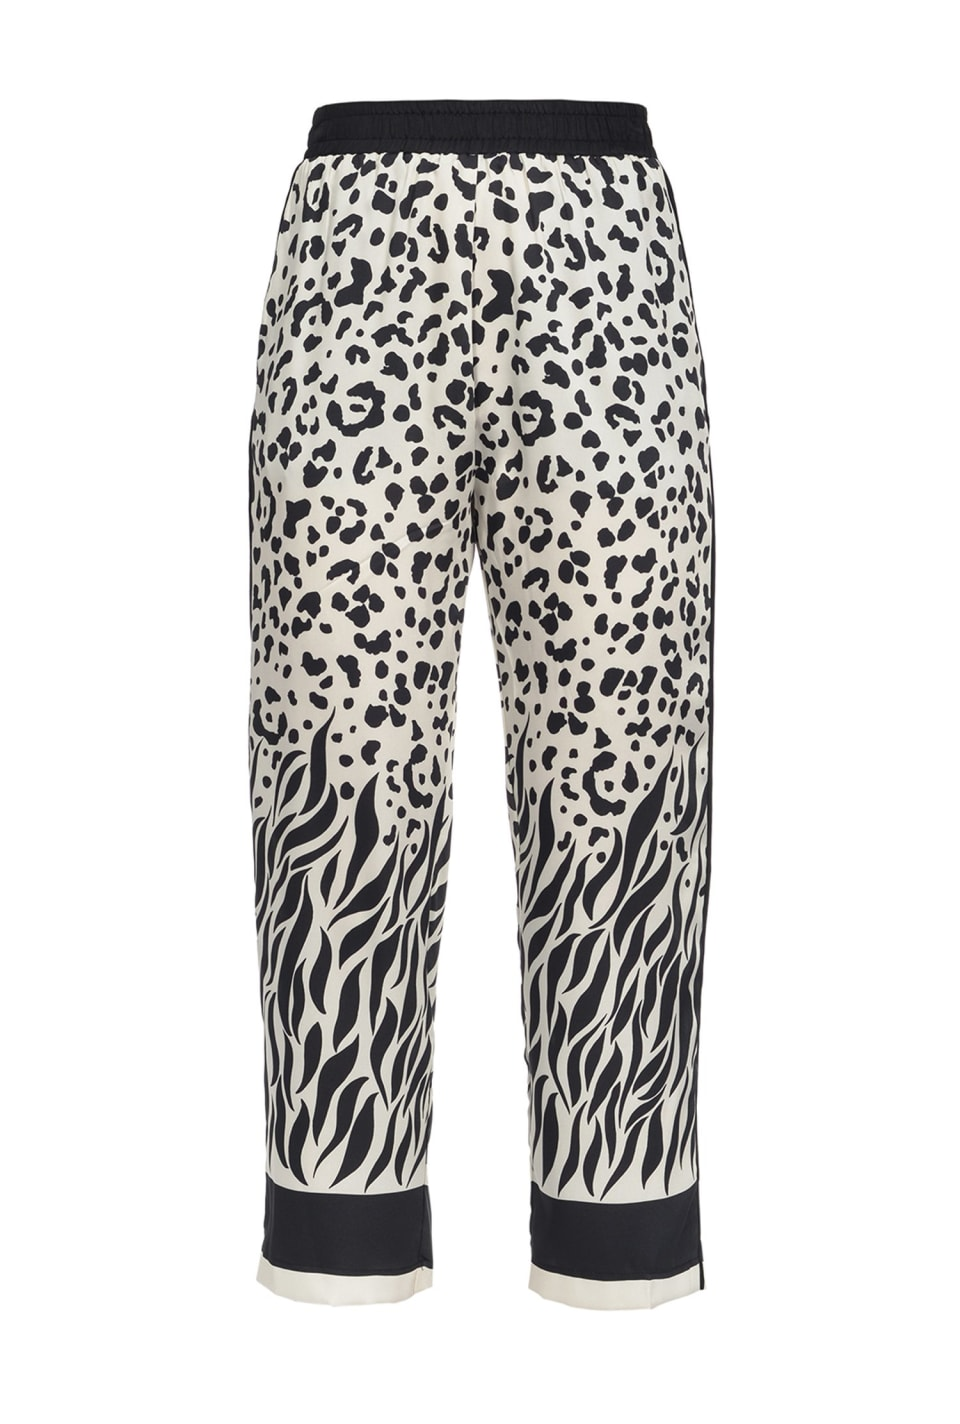 Pantalones con estampado mixto animal degradado